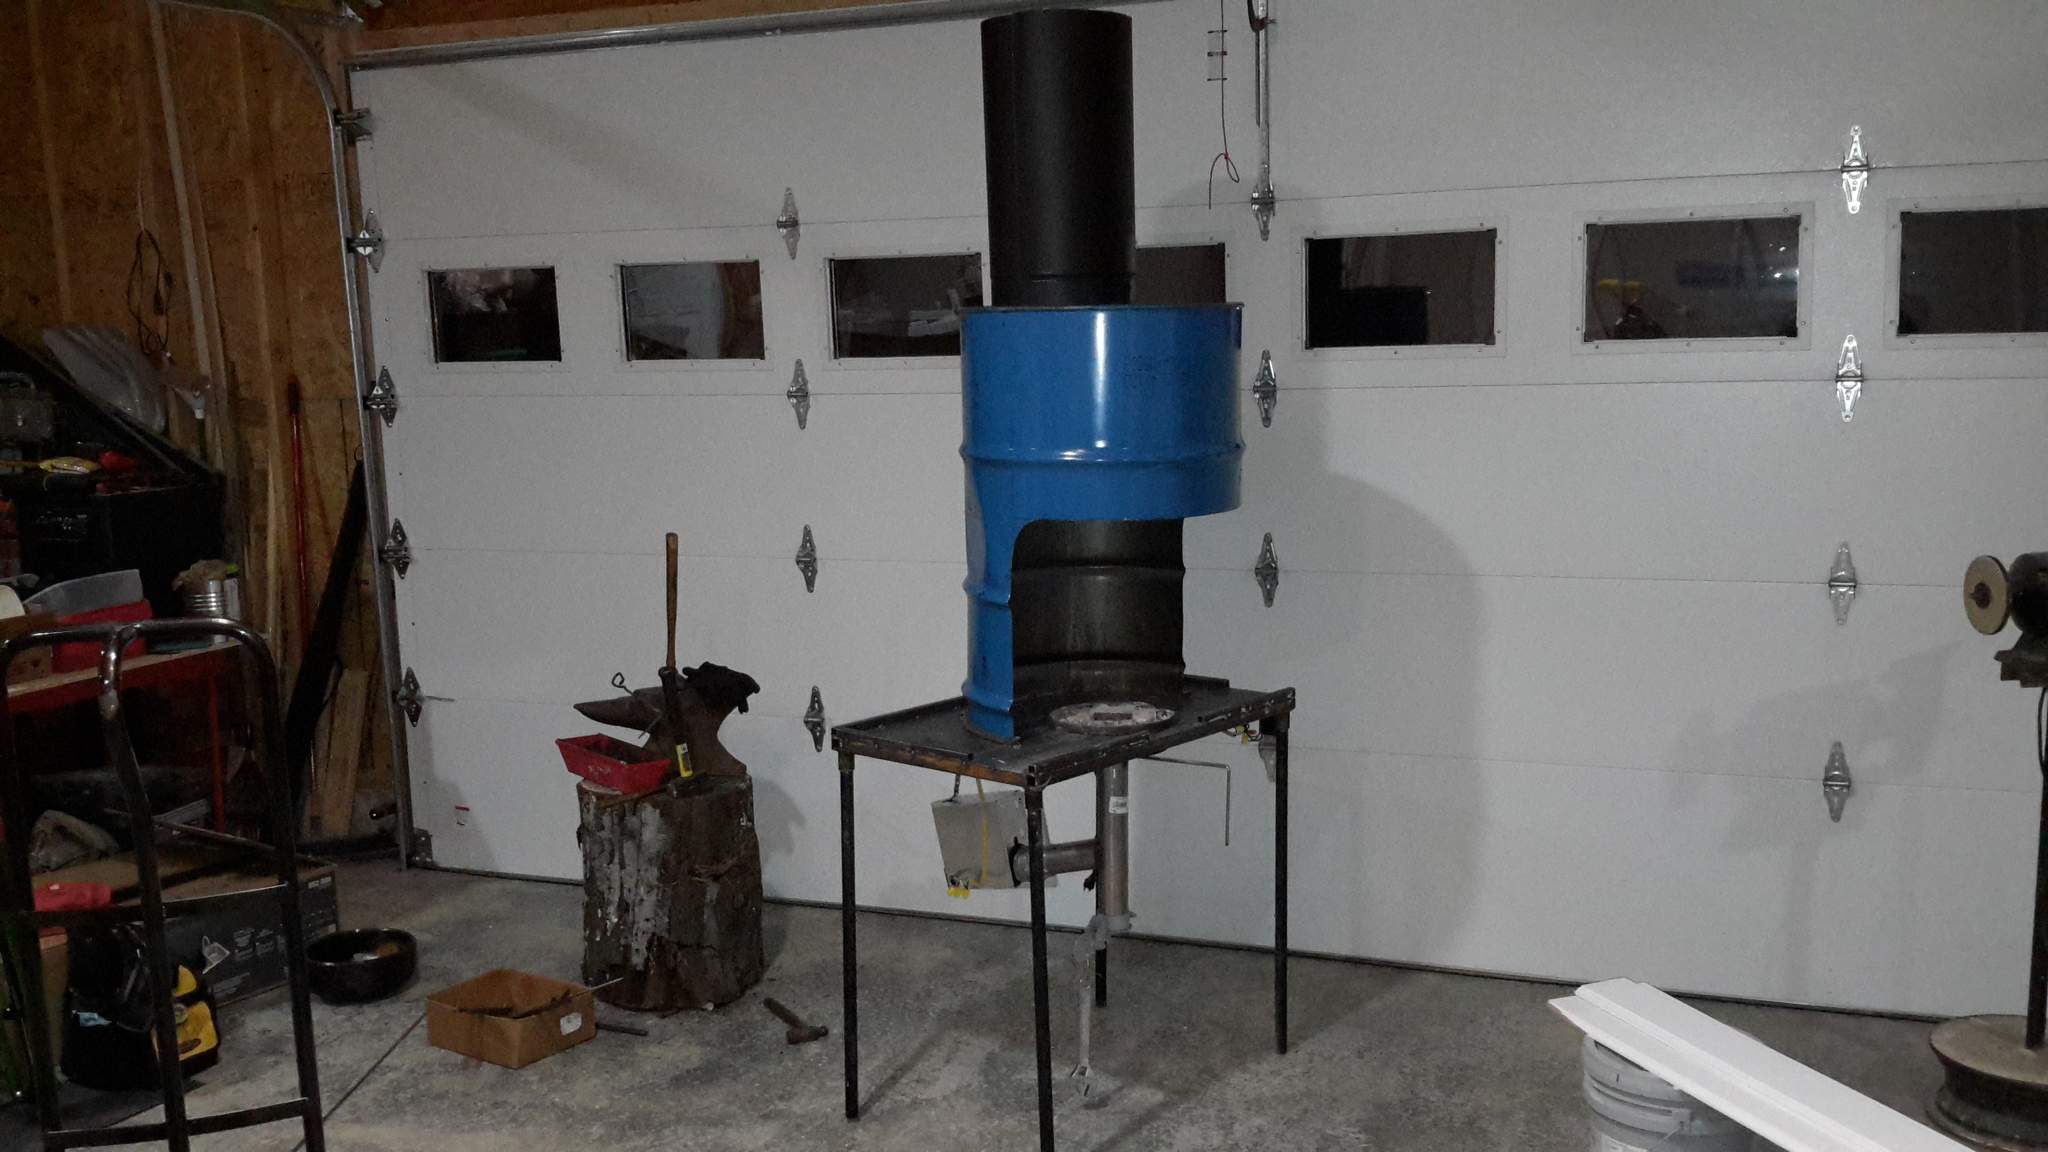 55 Gallon Barrel Traveling Forge Wip Solid Fuel Forges